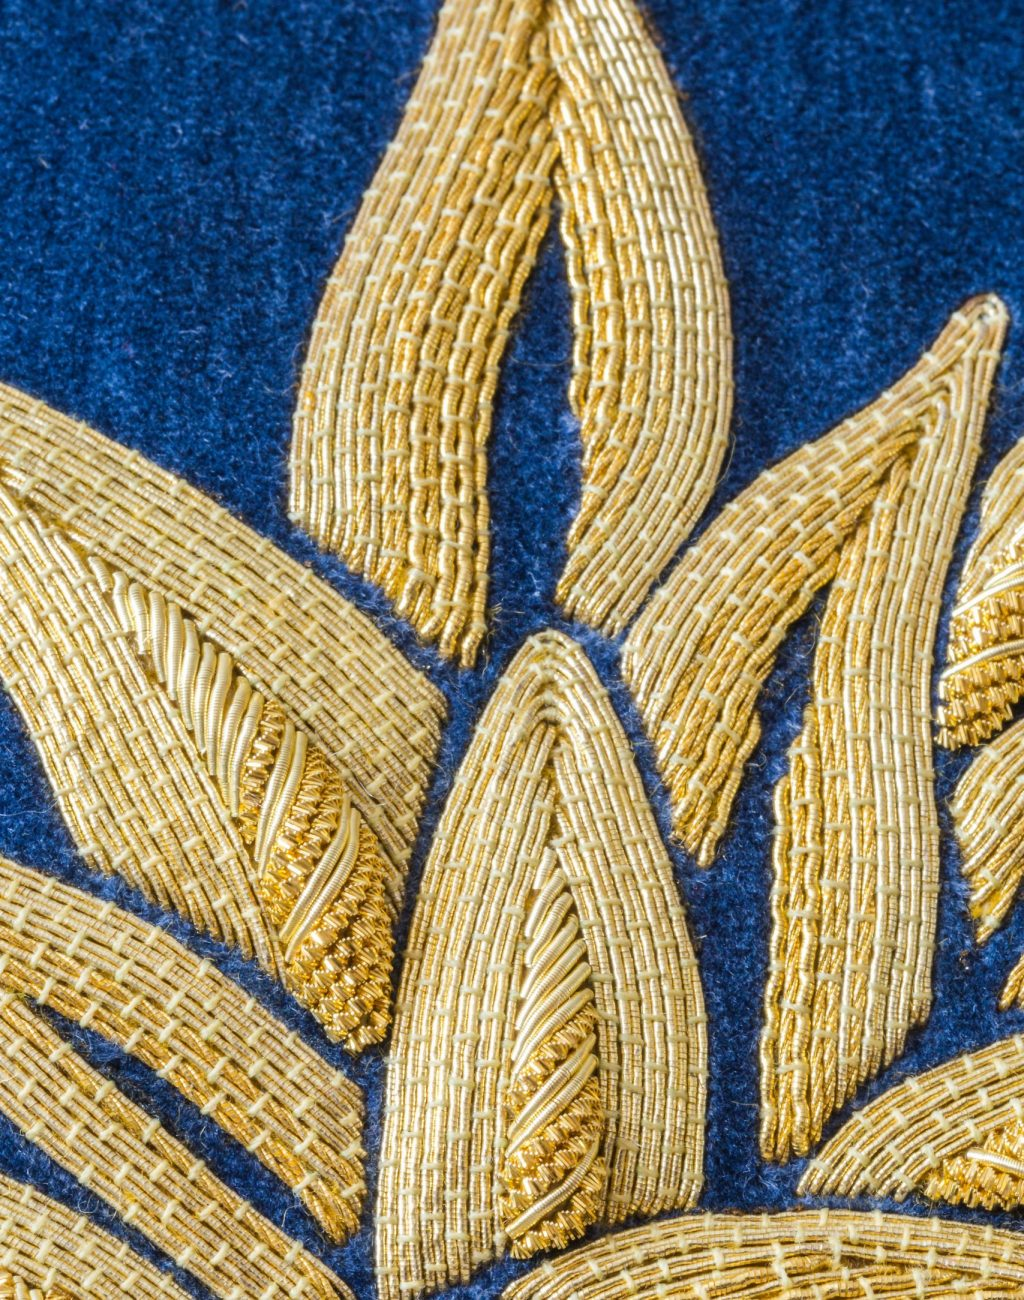 Goldwork embroidered pineapple on blue Velvet